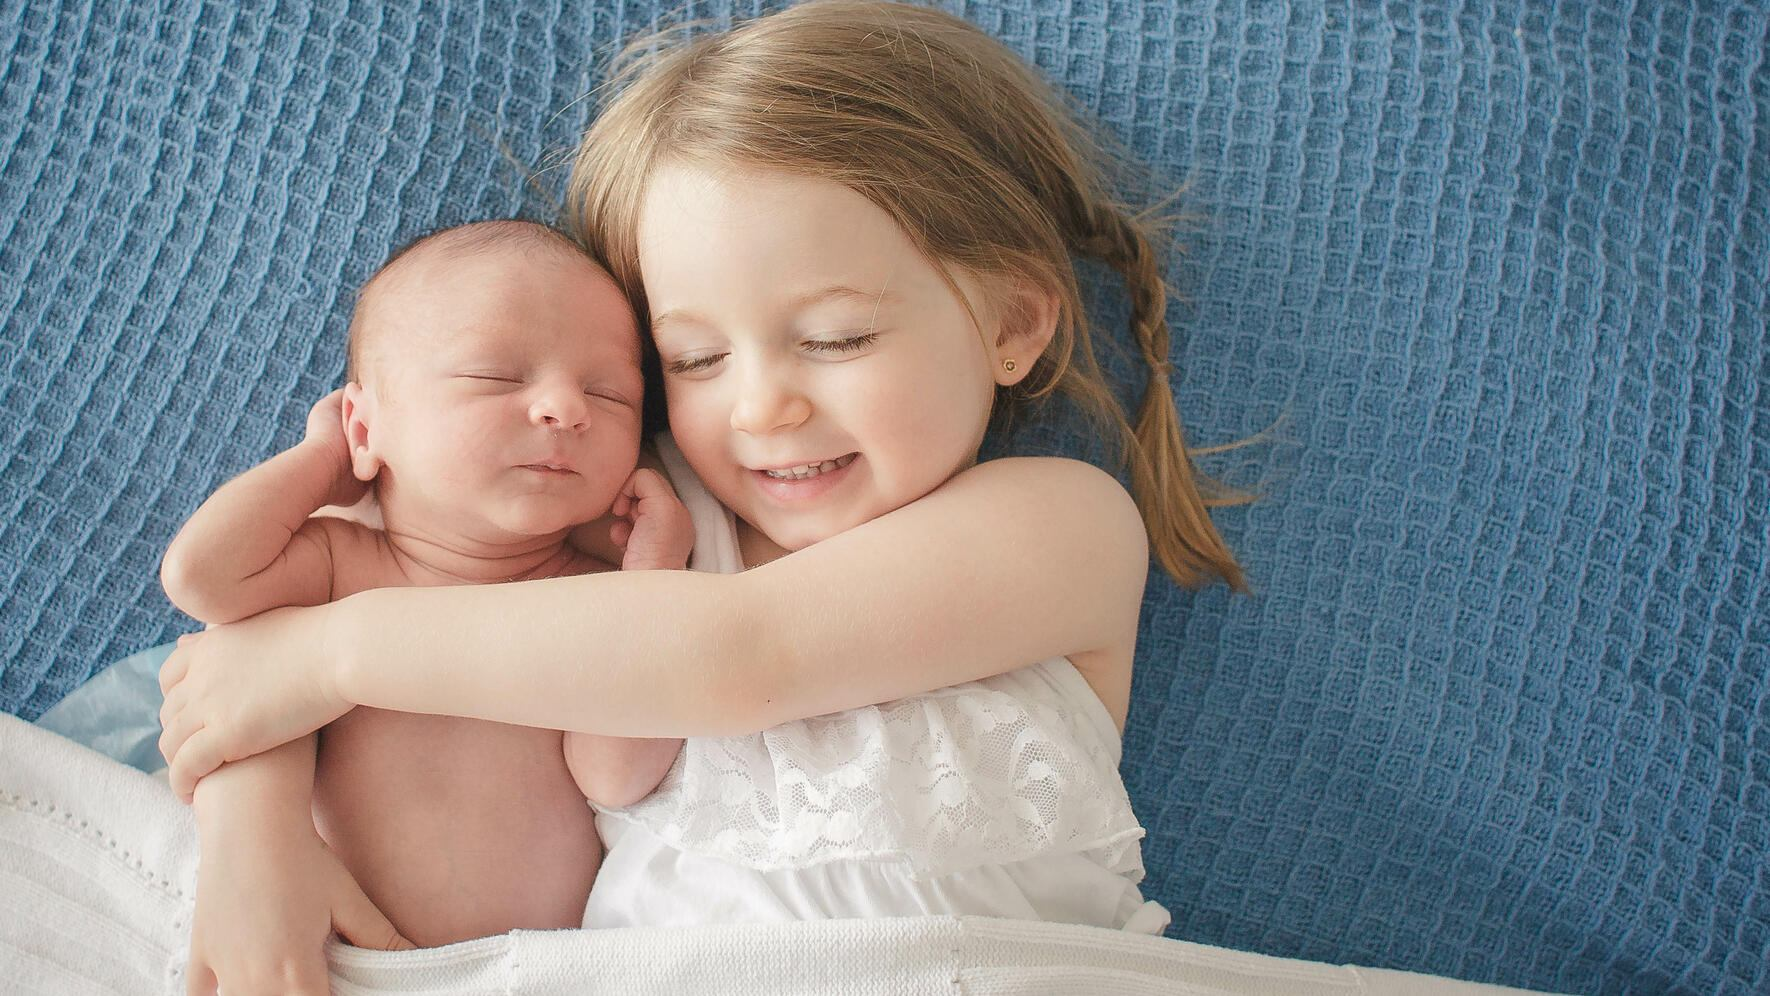 Preschool-aged toddler girl hugs her newborn baby brother on top of a blue blanket and under a white blanket.  She is smiling with her eyes closed while the baby sleeps contentedly.